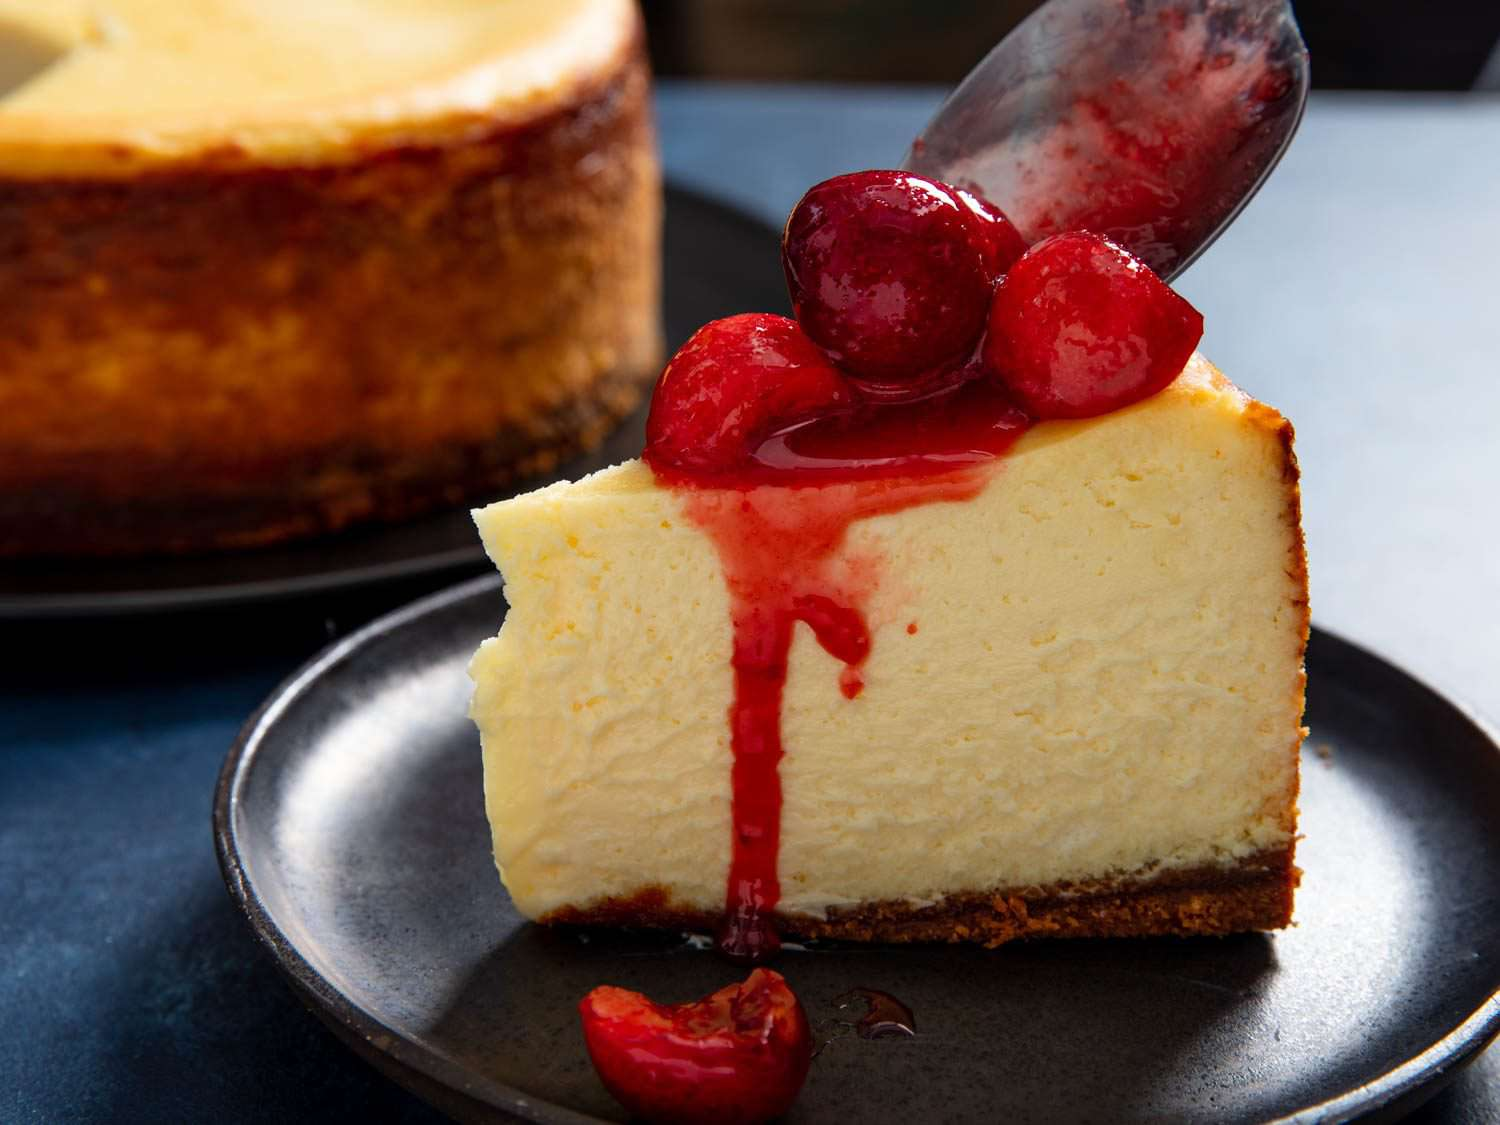 a slice of cheesecake topped with cherries